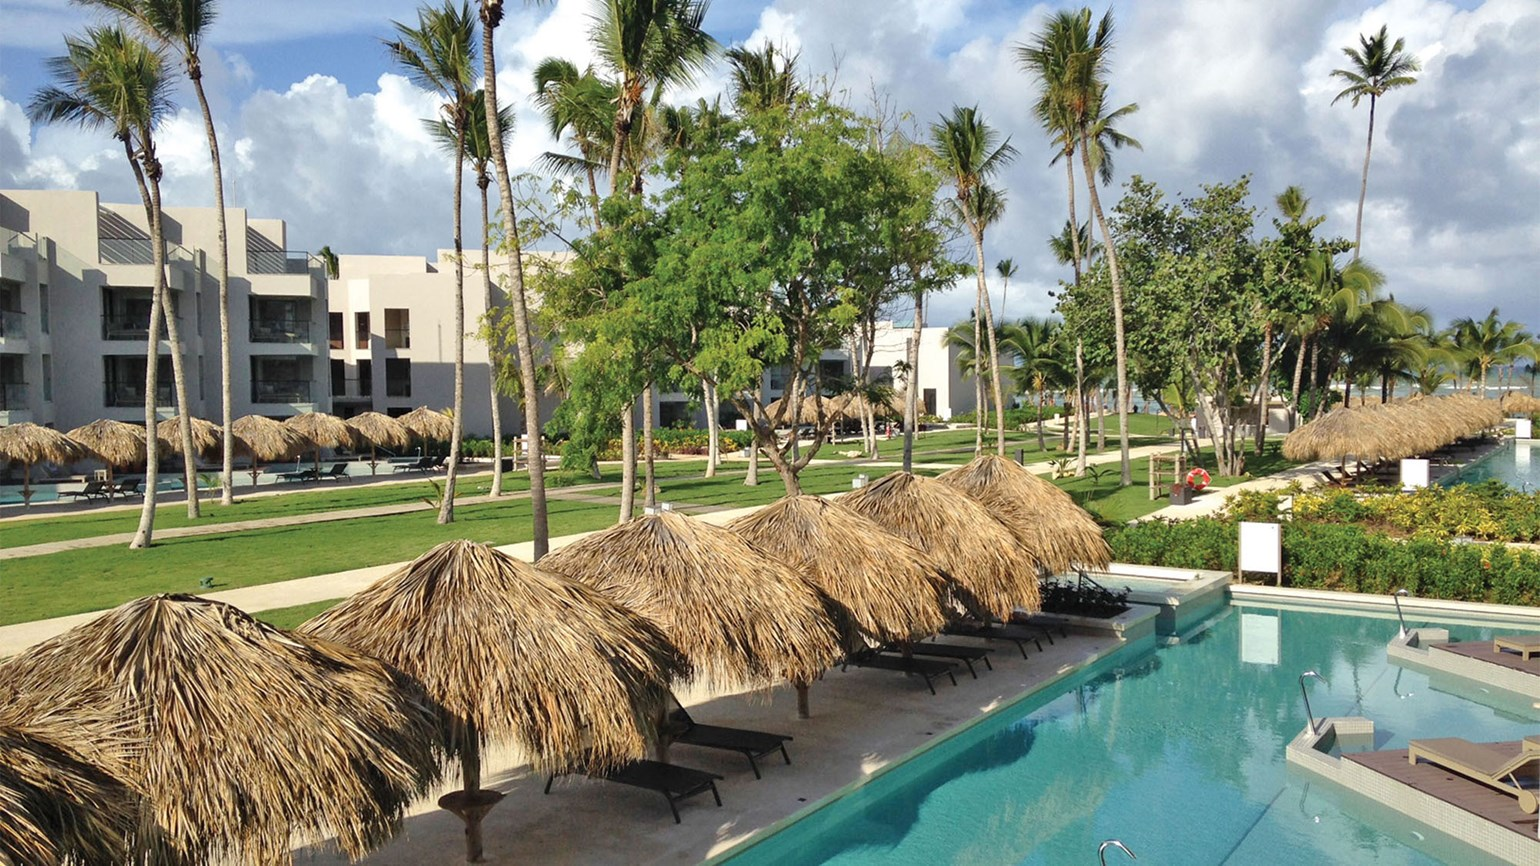 In Punta Cana, Excellence excels at service: Travel Weekly